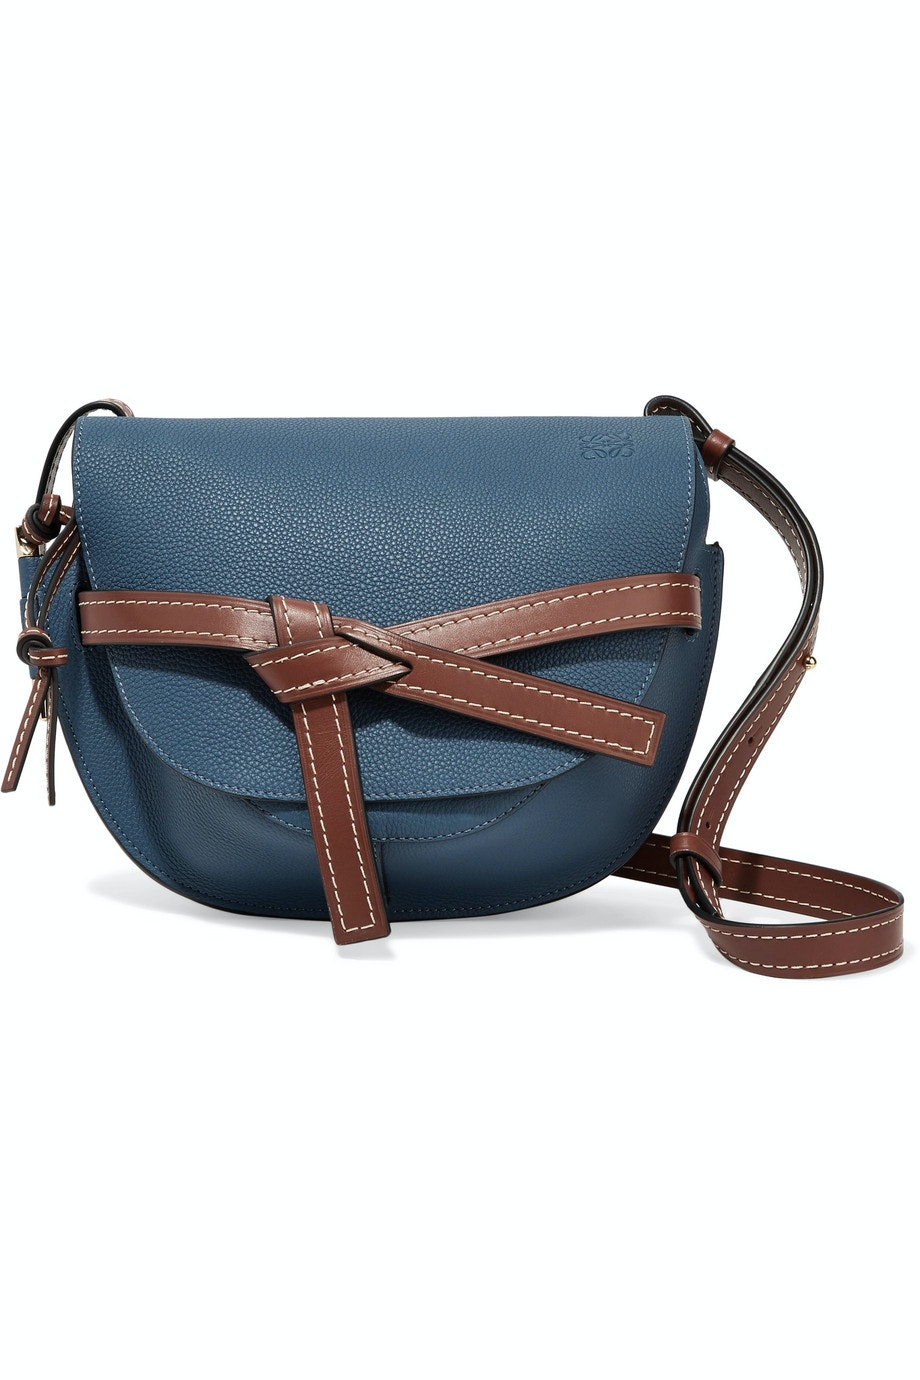 bf1e436eb54 12 Trendy Handbags For 2019 To Consider Investing In This Year